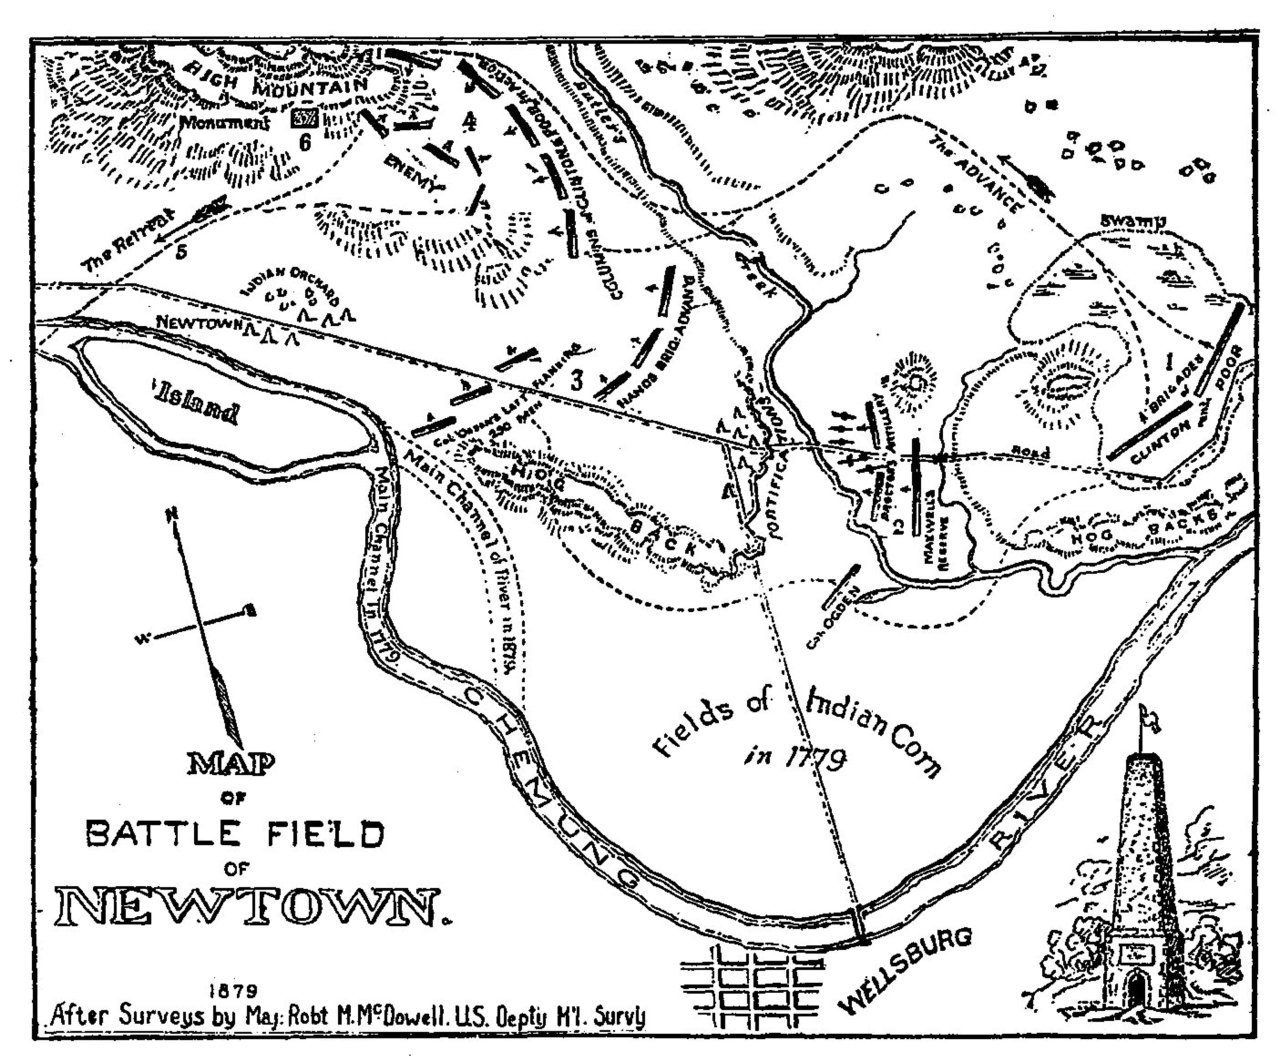 Map of the Newtown battlefield